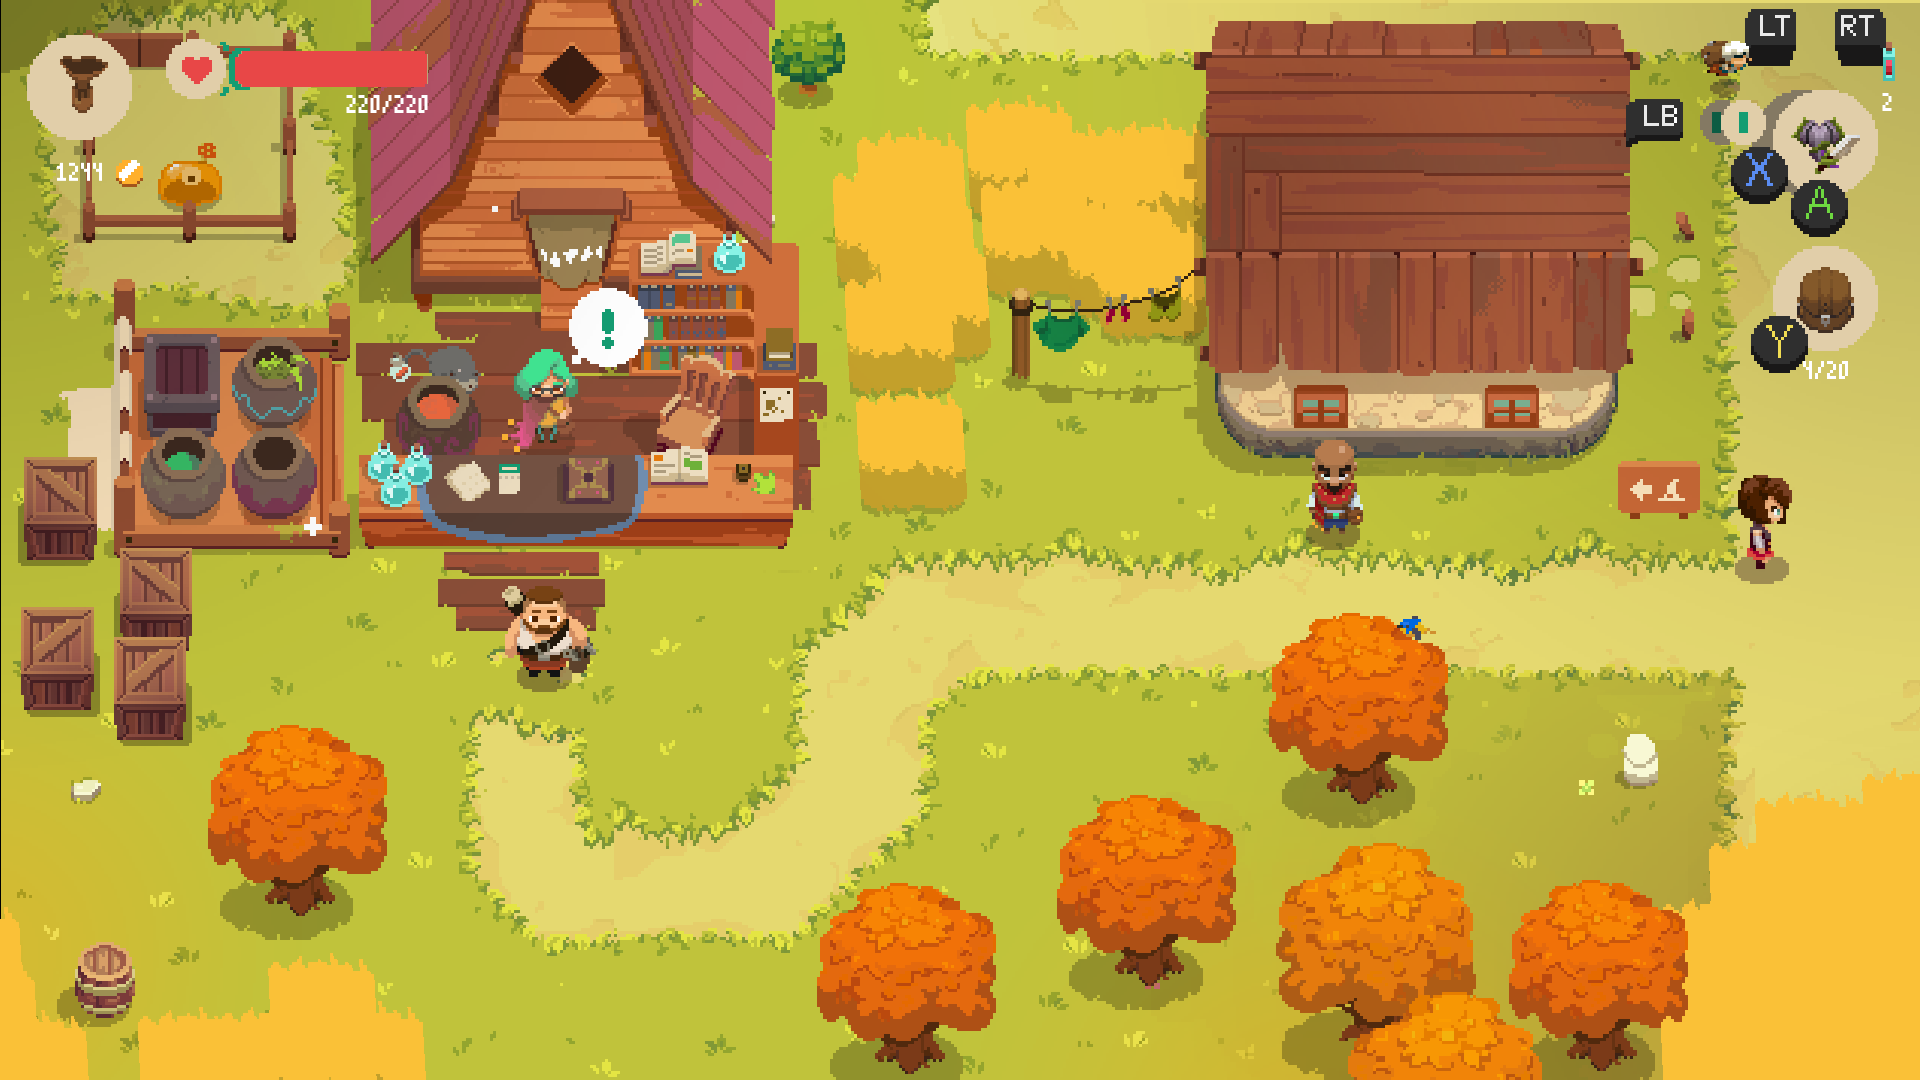 Moonlighter review image 2